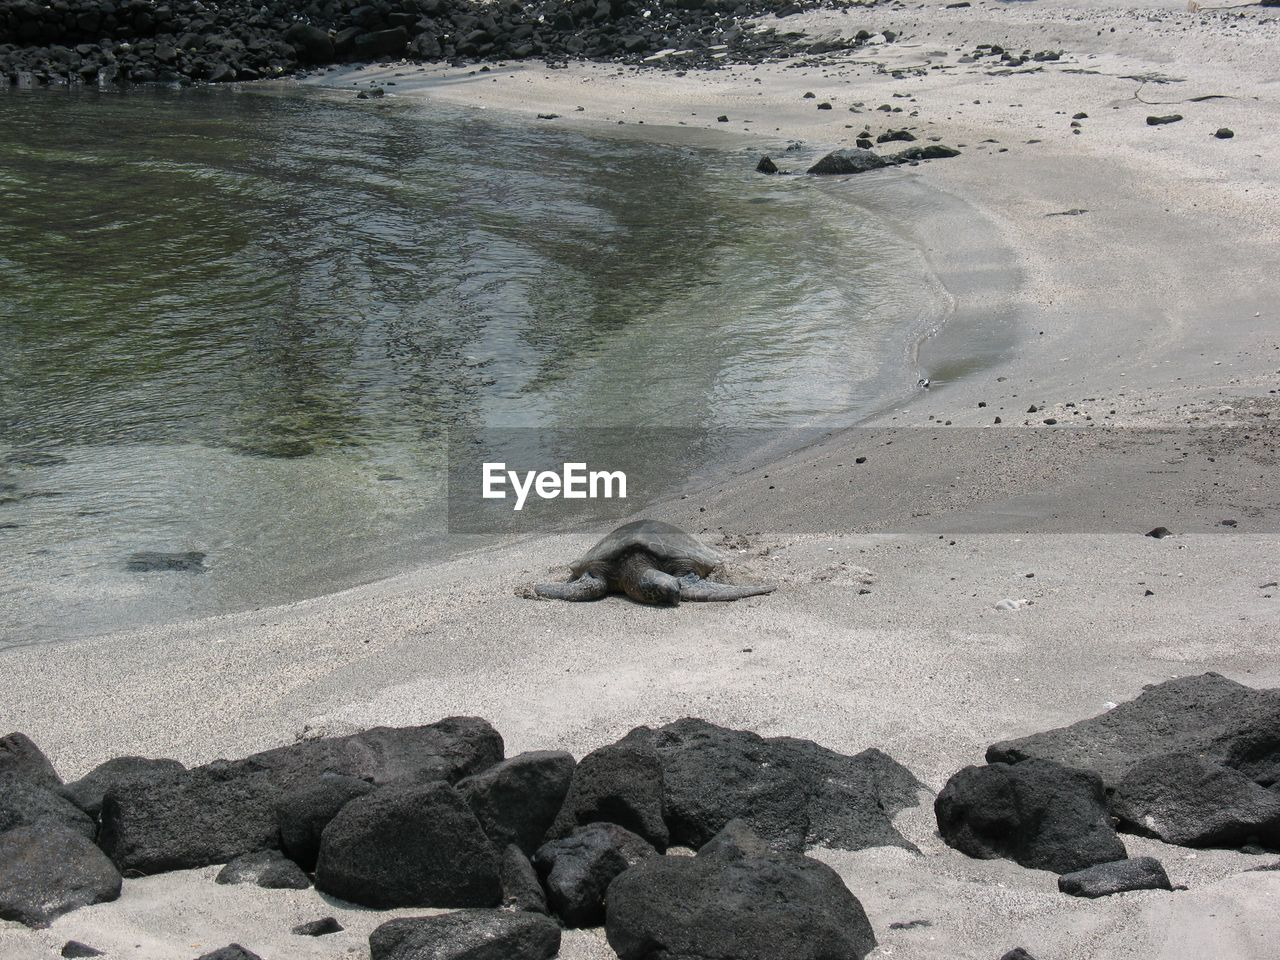 Close-Up Of Turtle Resting On Beach